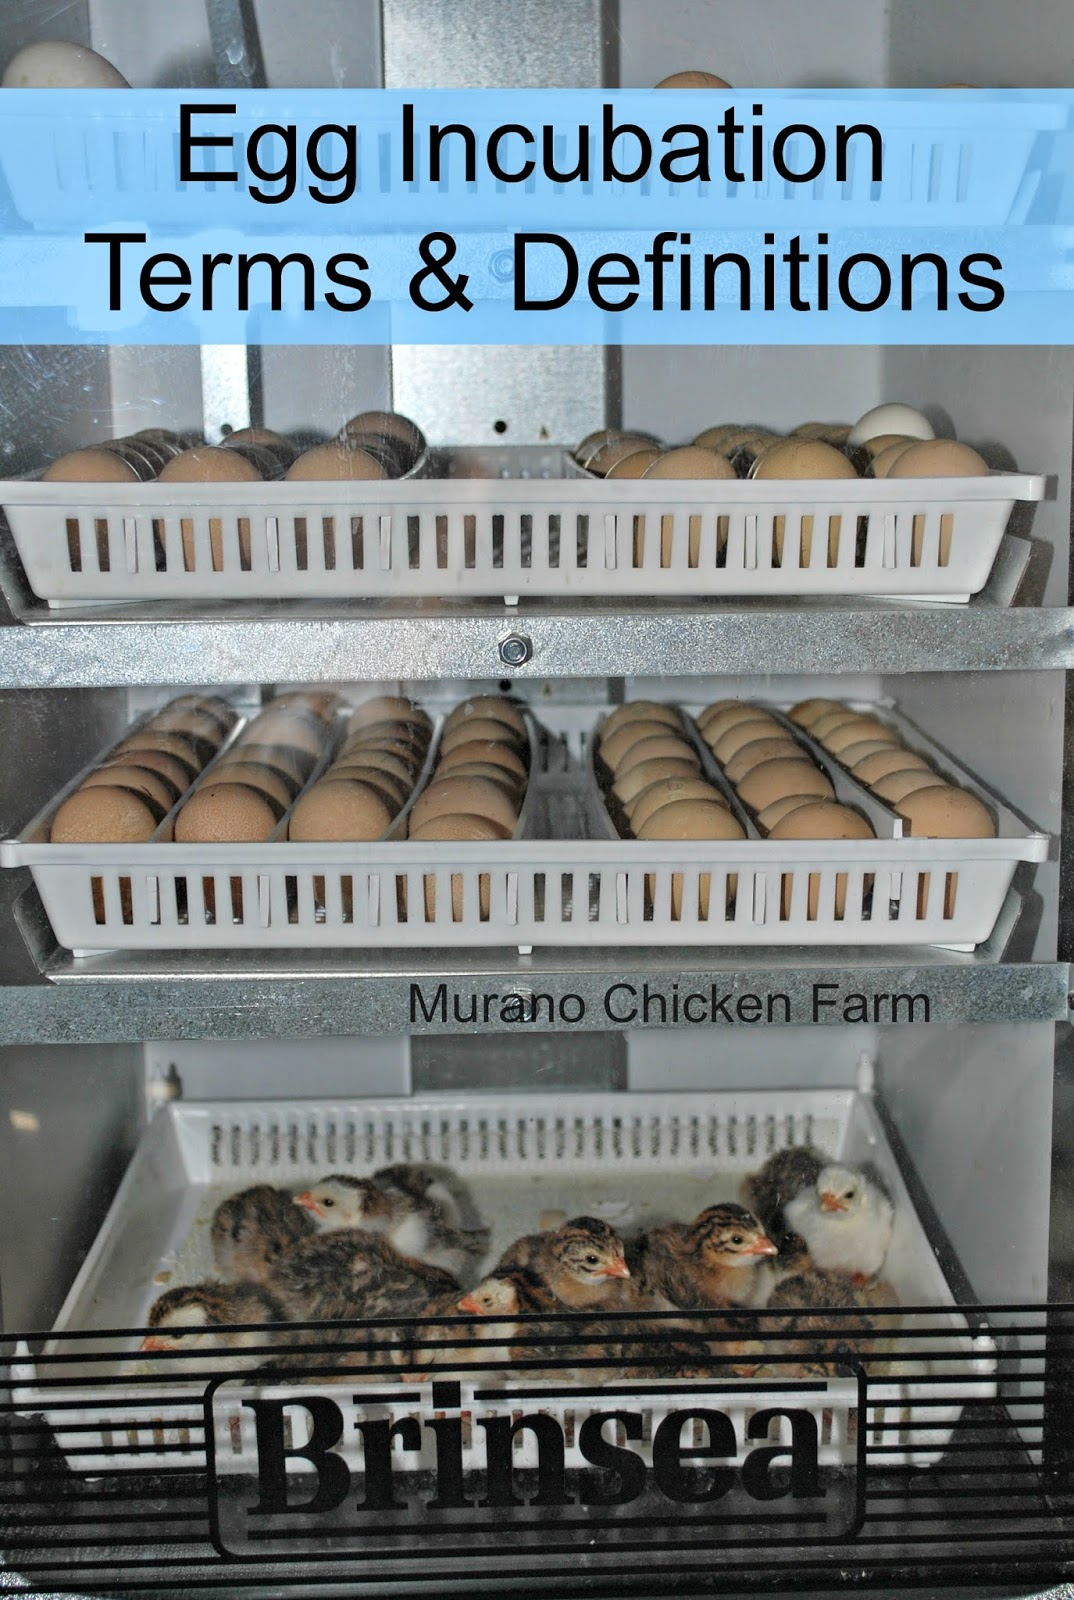 egg incubation terms & definitions